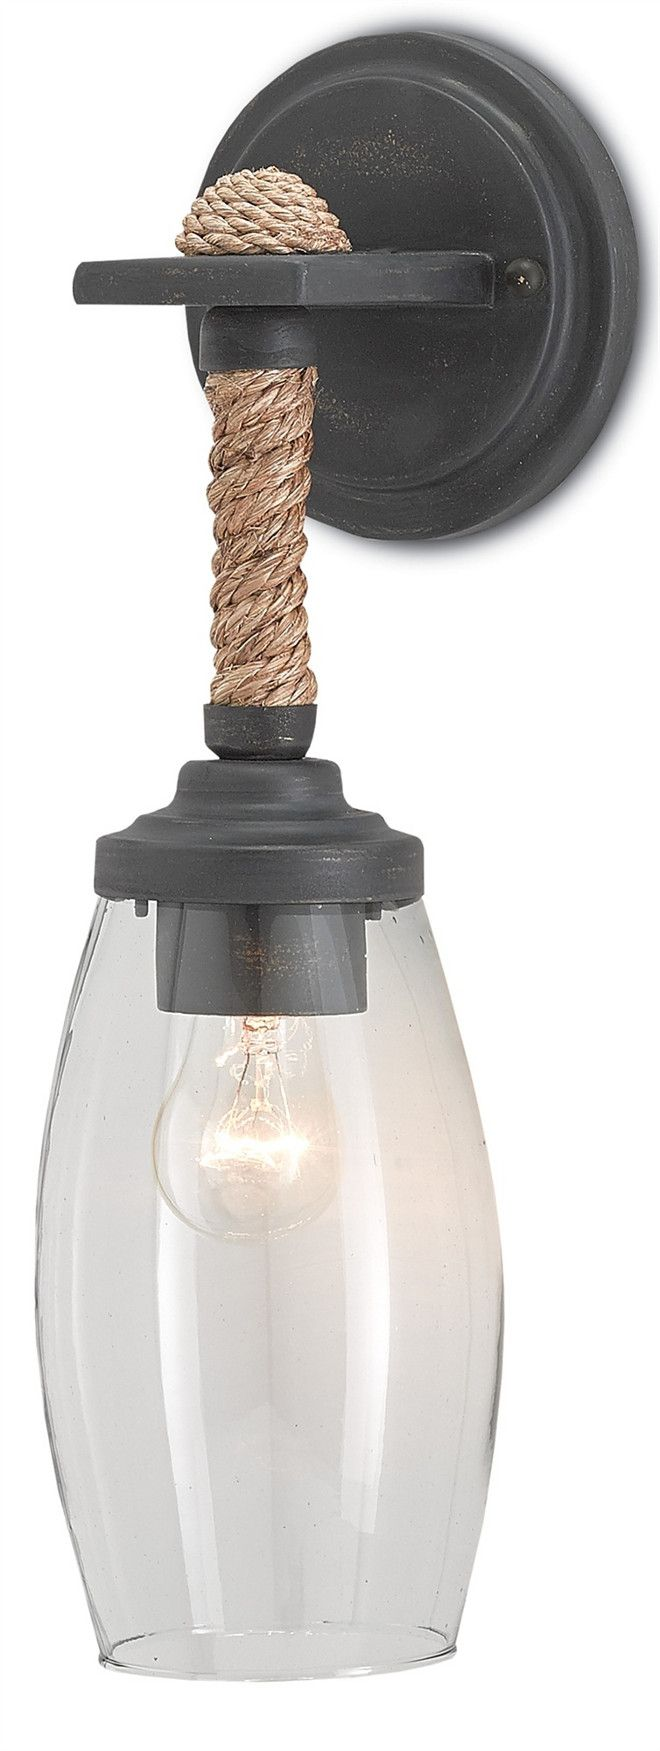 Currey & Co Hightider Wall Sconce. Farmhouse style lighting. Farmhouse interior lovers will love the simplicity of this sconce by Currey and Co. The perfect combination of natural materials and industrial textures, the Hightider Wall Sconce illuminates brilliant light through a blown glass shade. Its wrought iron metal frame is finished in French Black with a rope-wrapped hanging neck. Currey & Co Hightider Wall Sconce